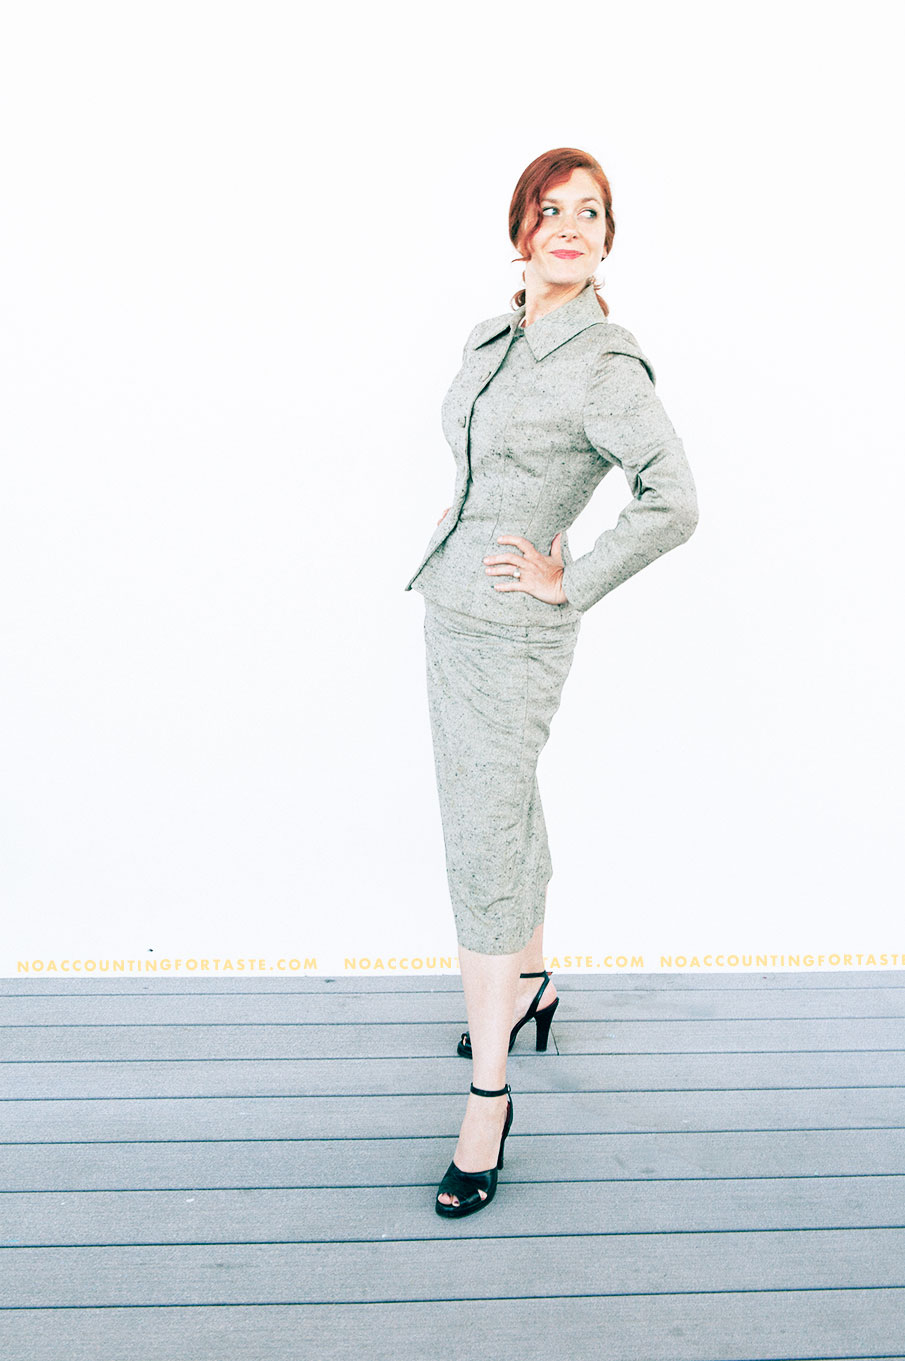 This is me trying to do my best New Look pose and not quite nailing it. An exquisite 1950s Lilli Ann suit. 1940s-style platform heels by Remix–sorry, our dog ate my 1950s pumps.